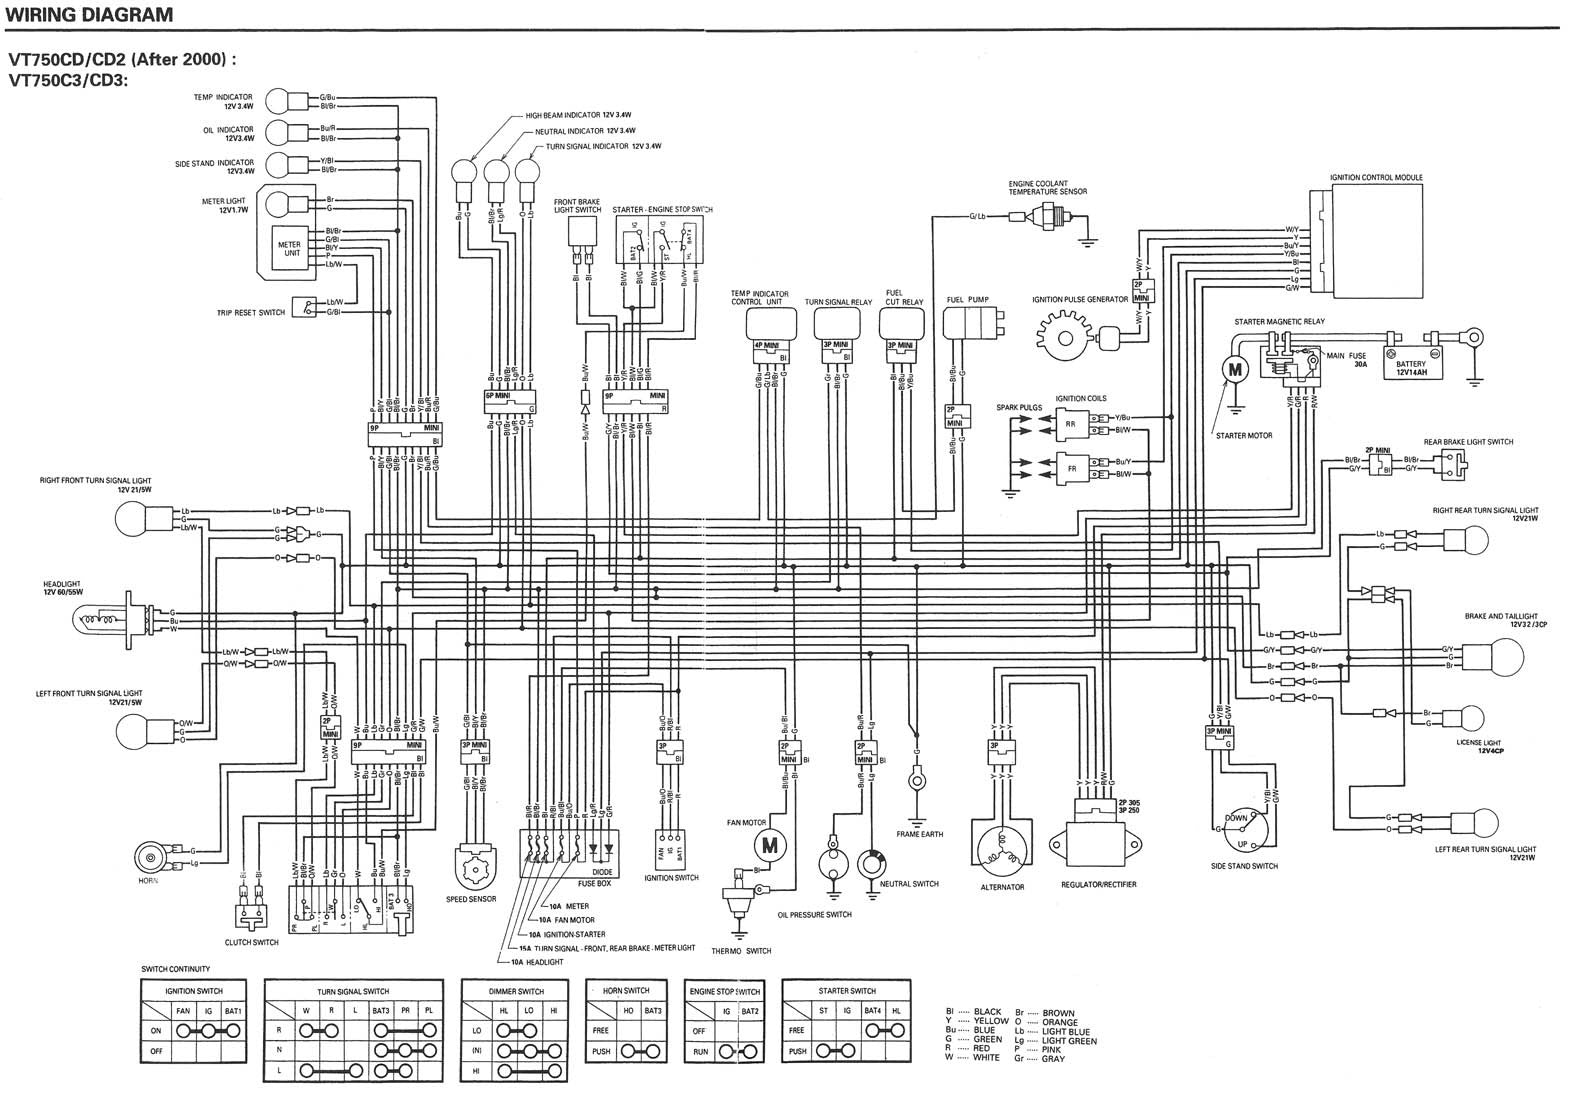 VT750_ACE_Wiring_Diagram_2001 2003_V.2?17490154244262524096 faq tj brutal customs 1999 honda shadow 1100 wiring diagram at edmiracle.co